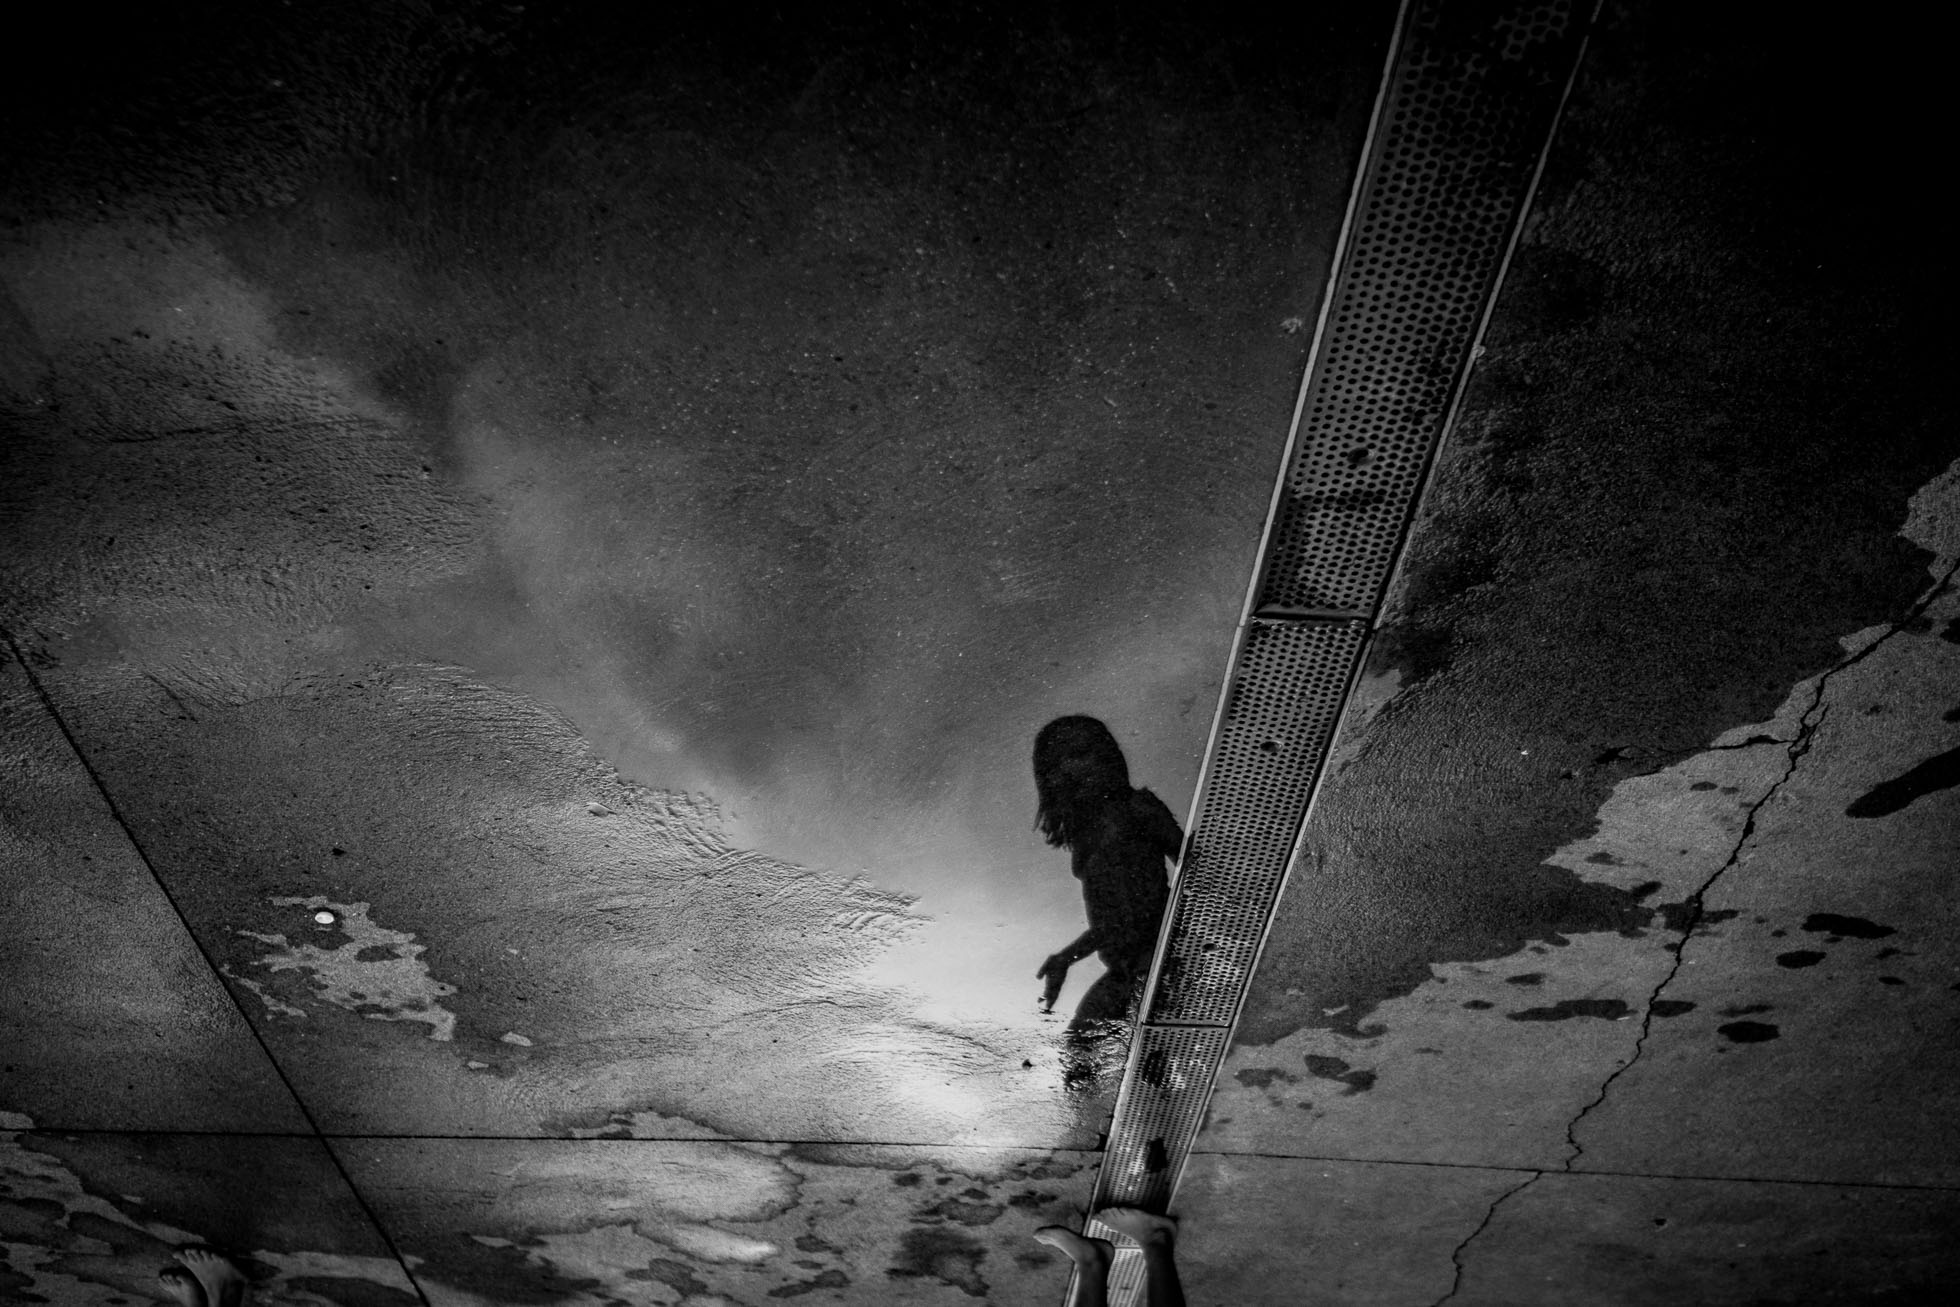 Girl Reflection Flipped In Black And White Puddle